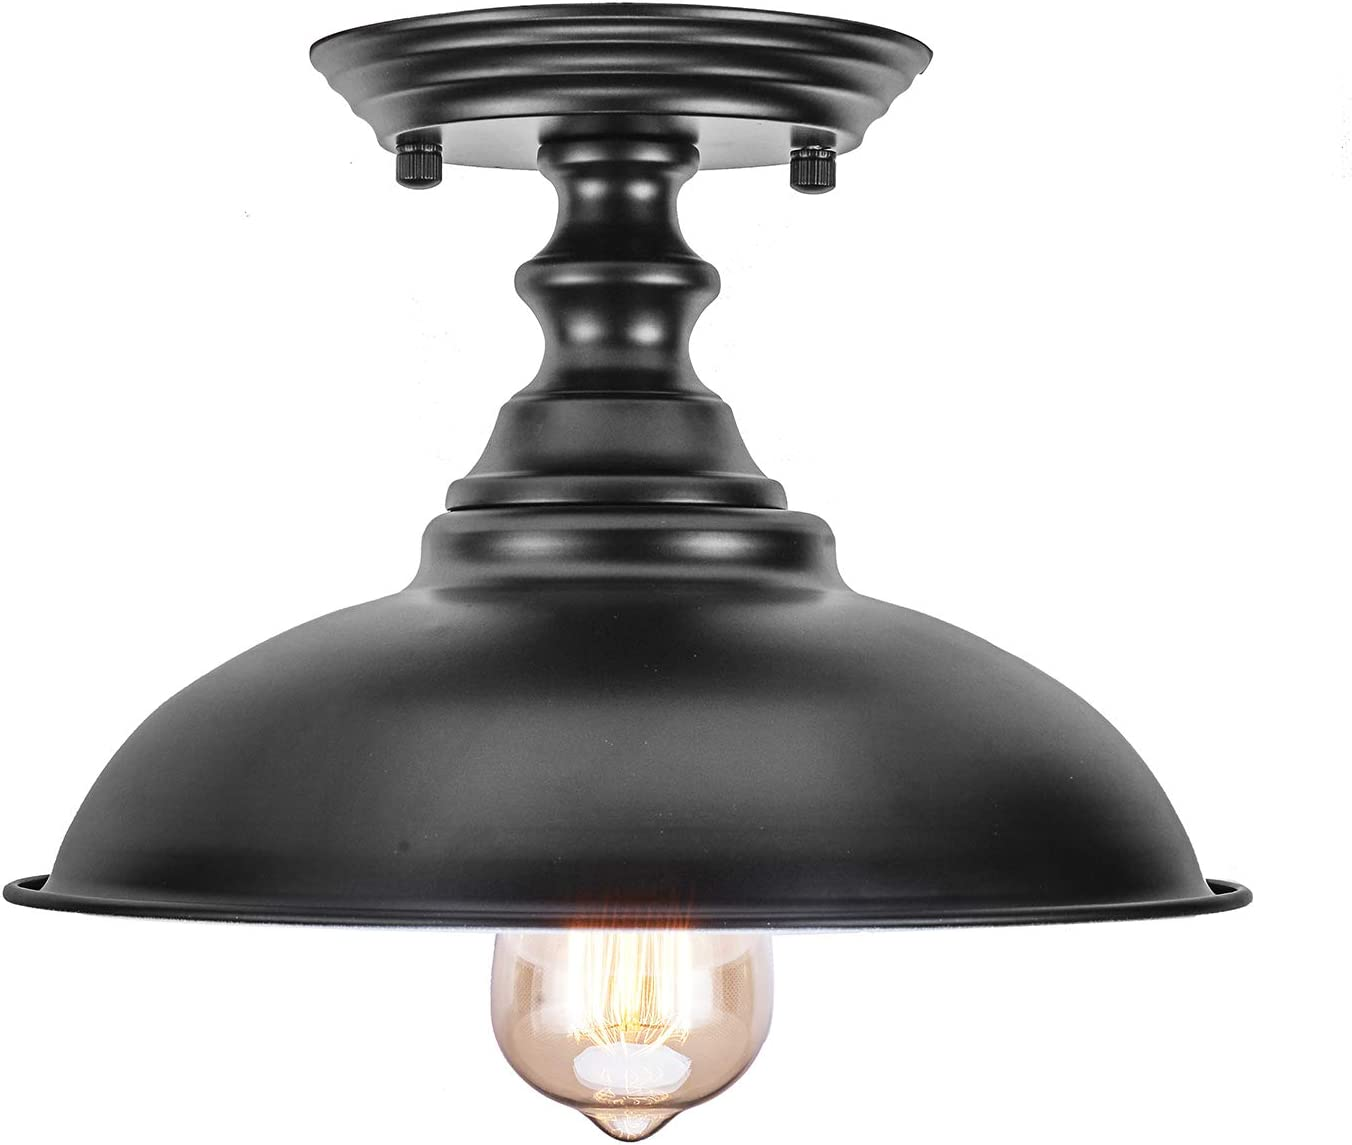 HMVPL Farmhouse Close to Ceiling Lamp, Metal Black Semi Flush Mounted Pendant Lighting Fixture Industrial Edison Light for Kitchen Island Dining Room Foyer Hallway Entryway Set of 2